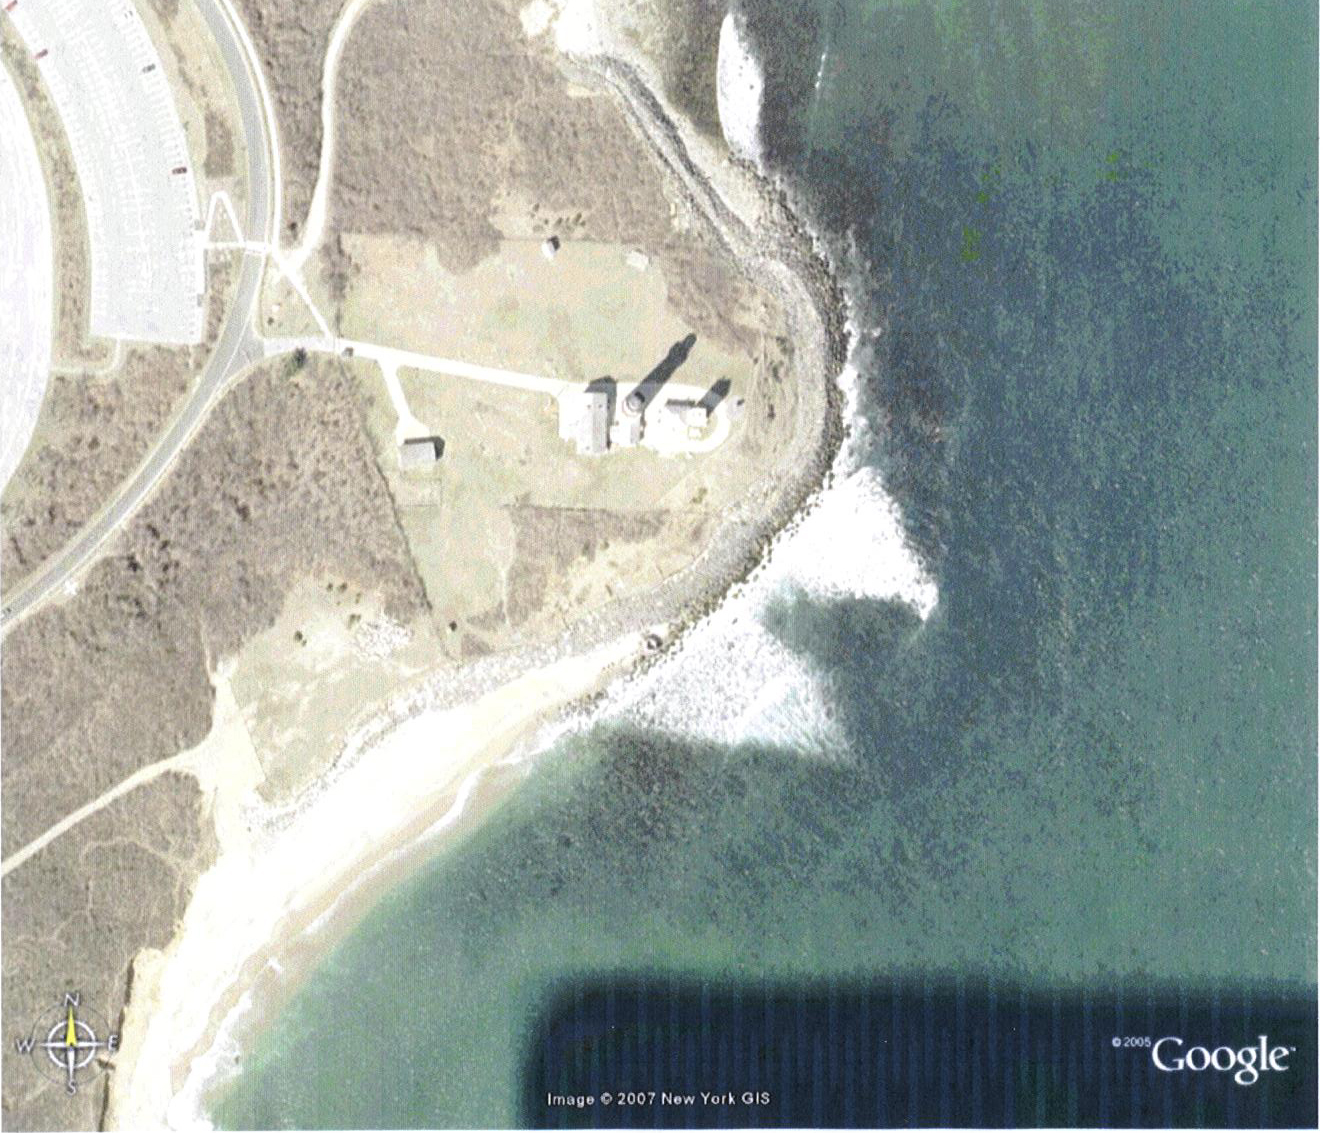 Montauk Point as seen from space